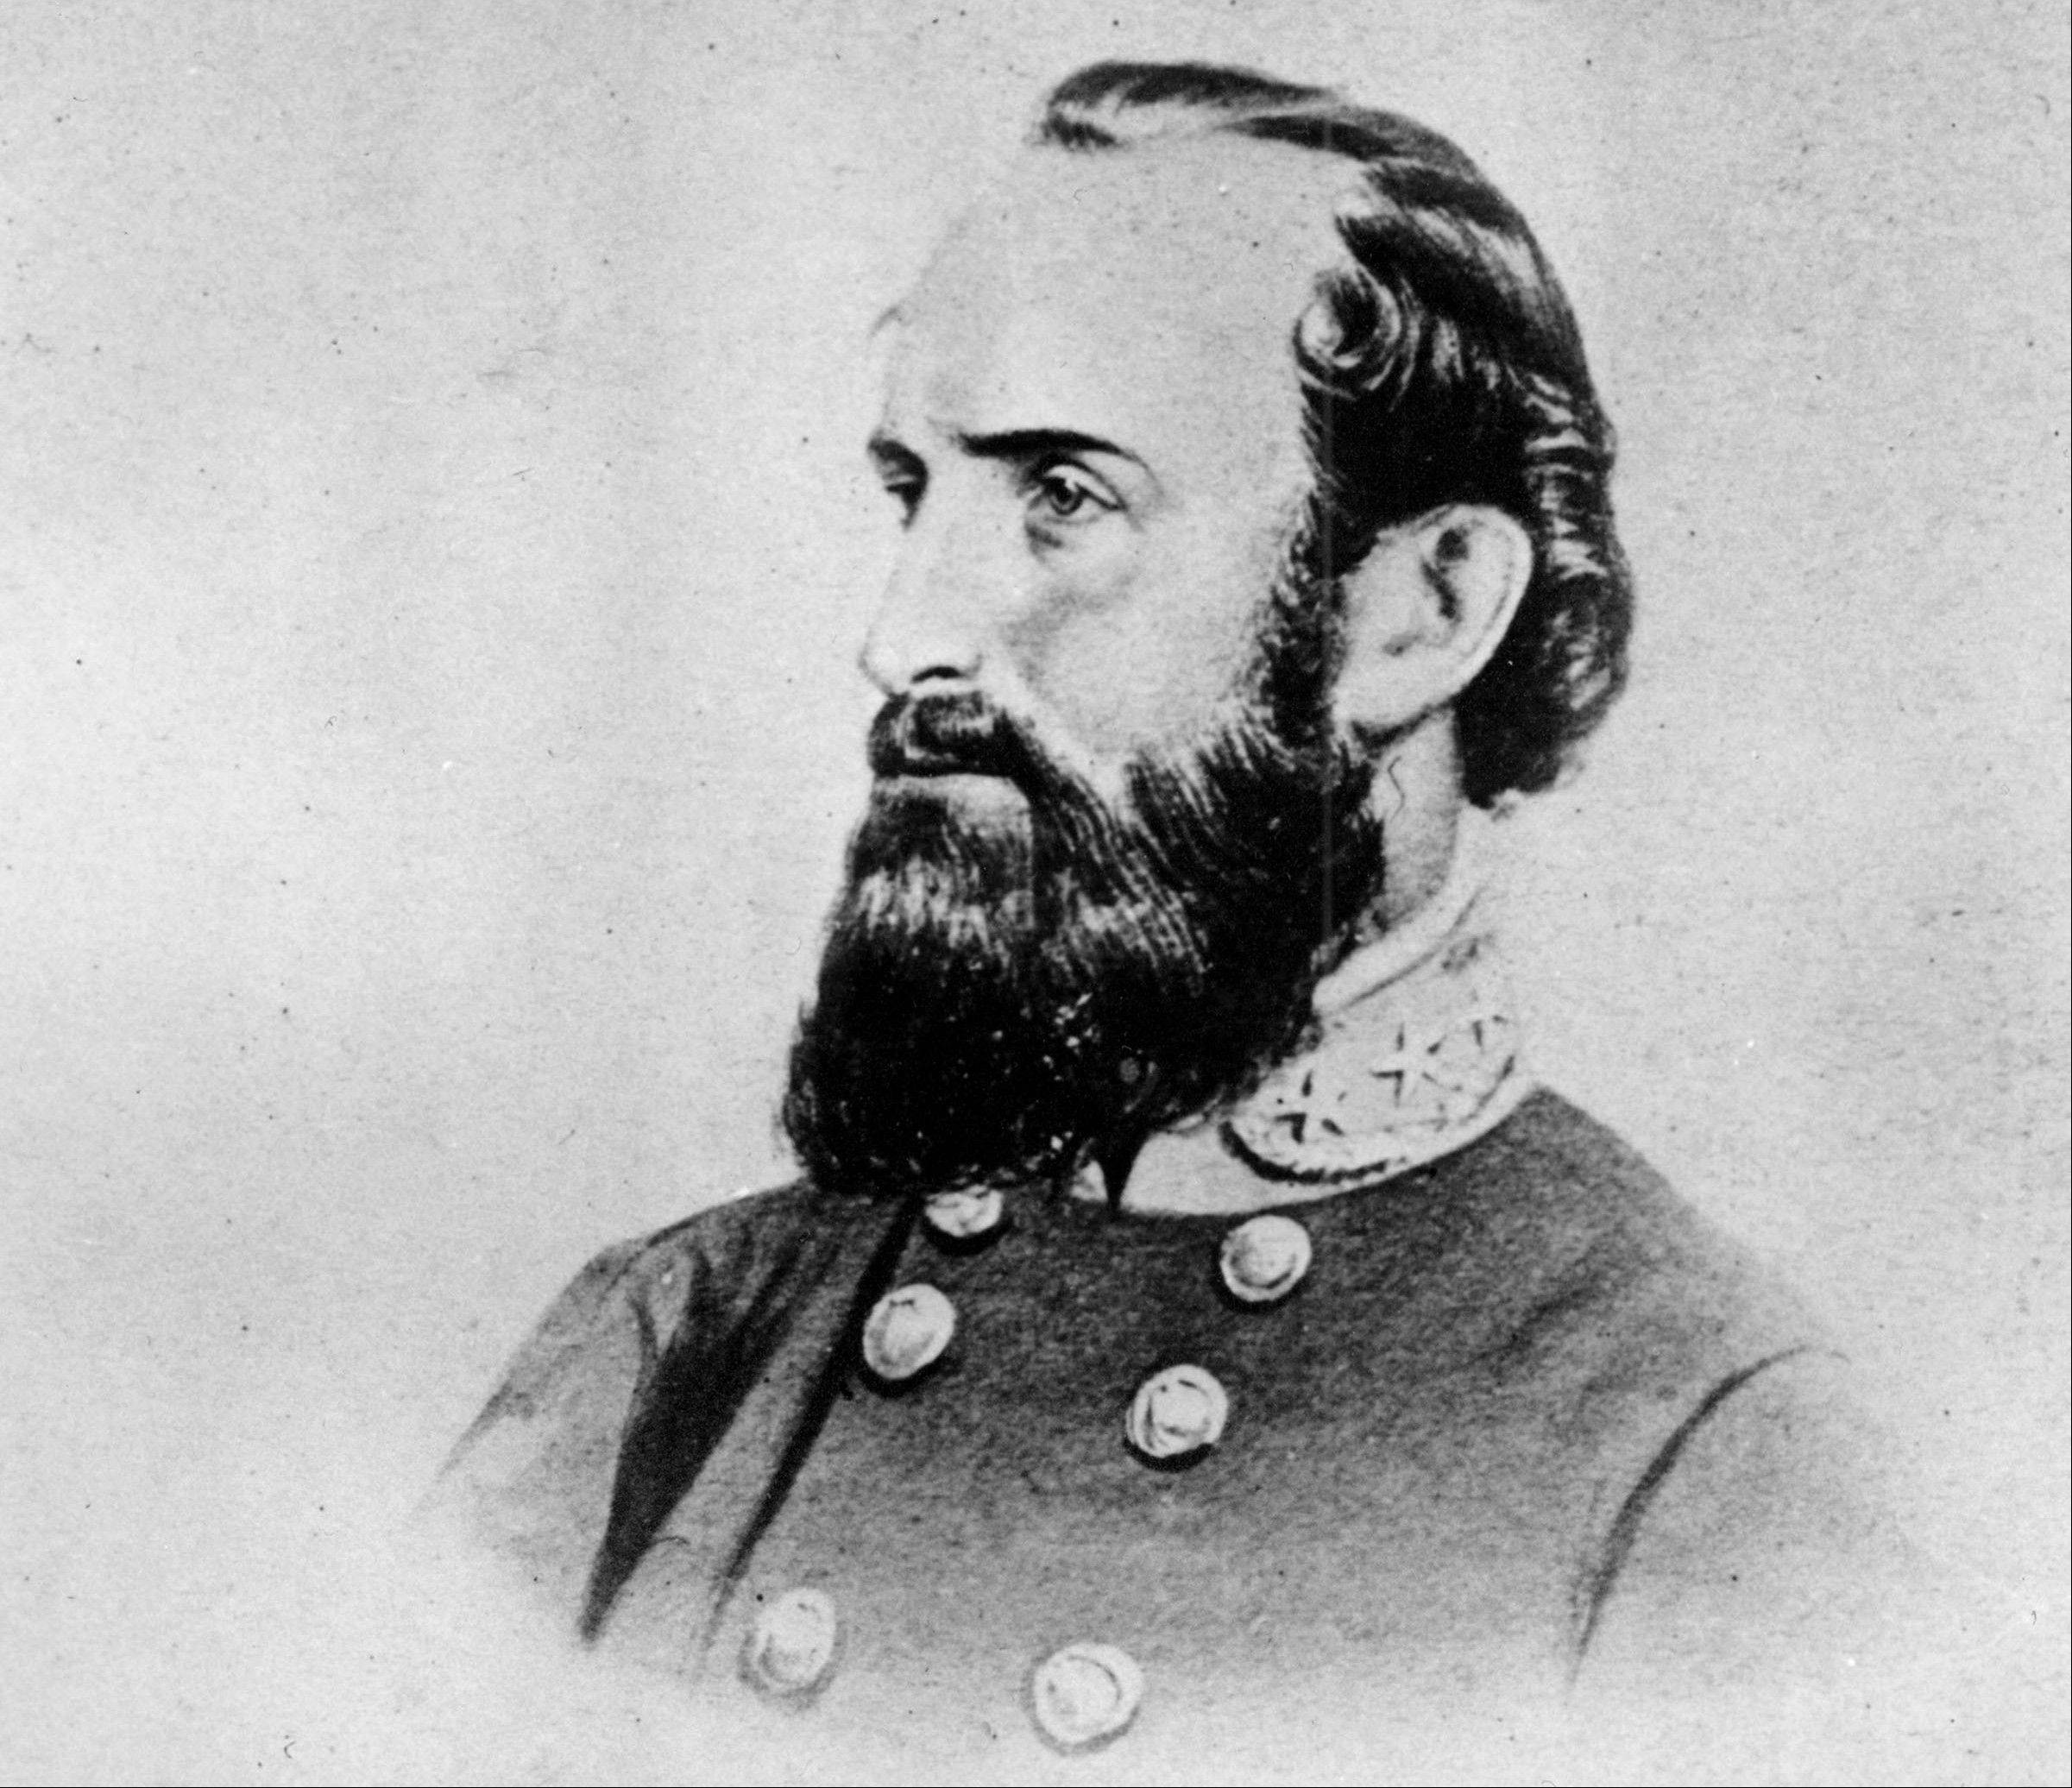 A drawing of Thomas Jonathan �Stonewall� Jackson, the Confederate general during the American Civil War.